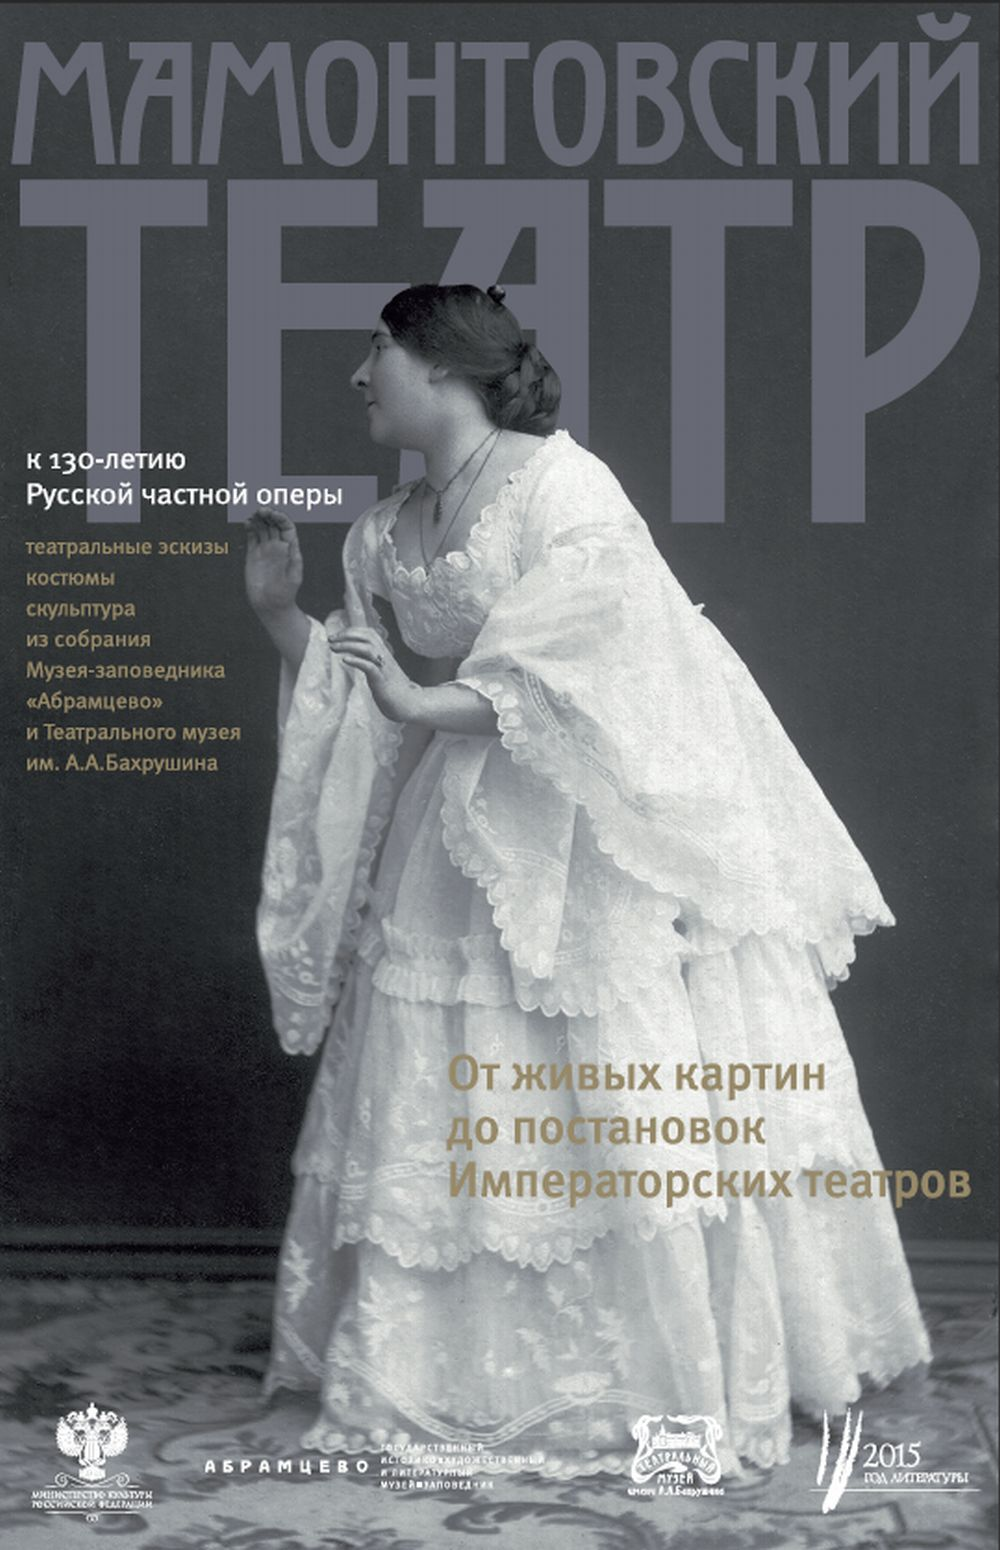 Postmodern Speaking. Russian world as a white coat with a target on the chest